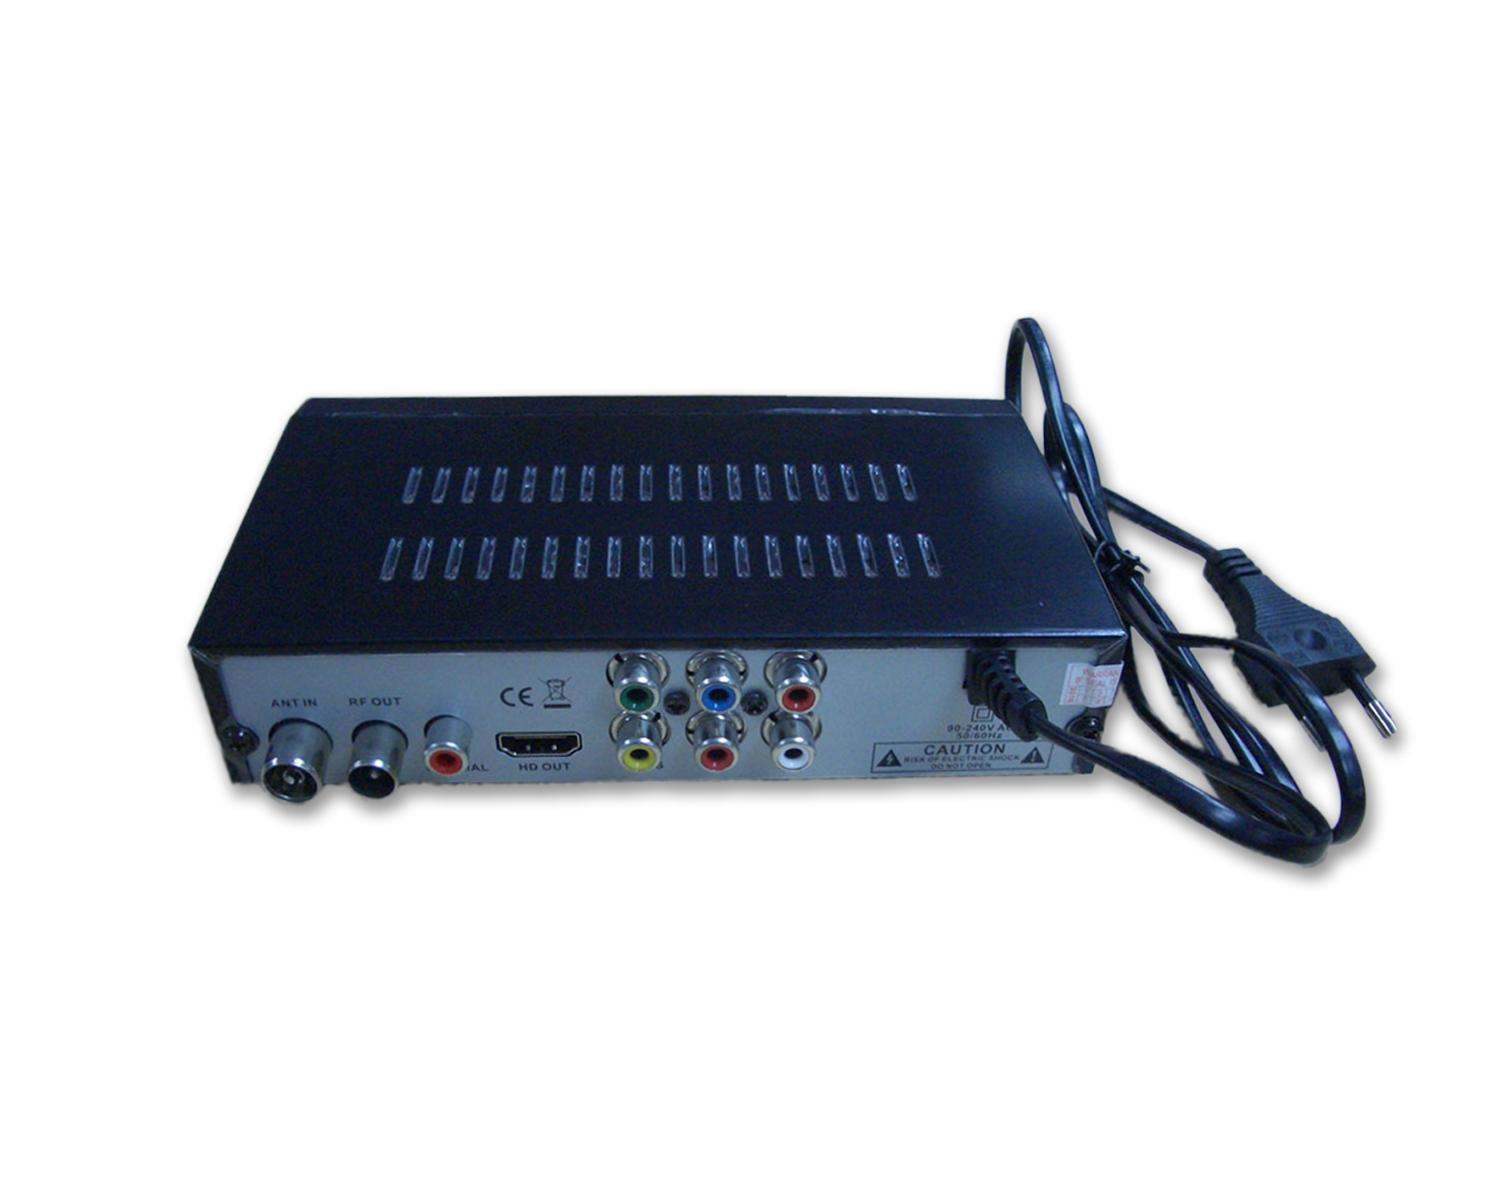 Цифров декодер NotOnlyTV ONEAUDIO DTR5110 SET TOP BOX (DVB-T2 декодер), HDMI, CVBS, YPbPr-2